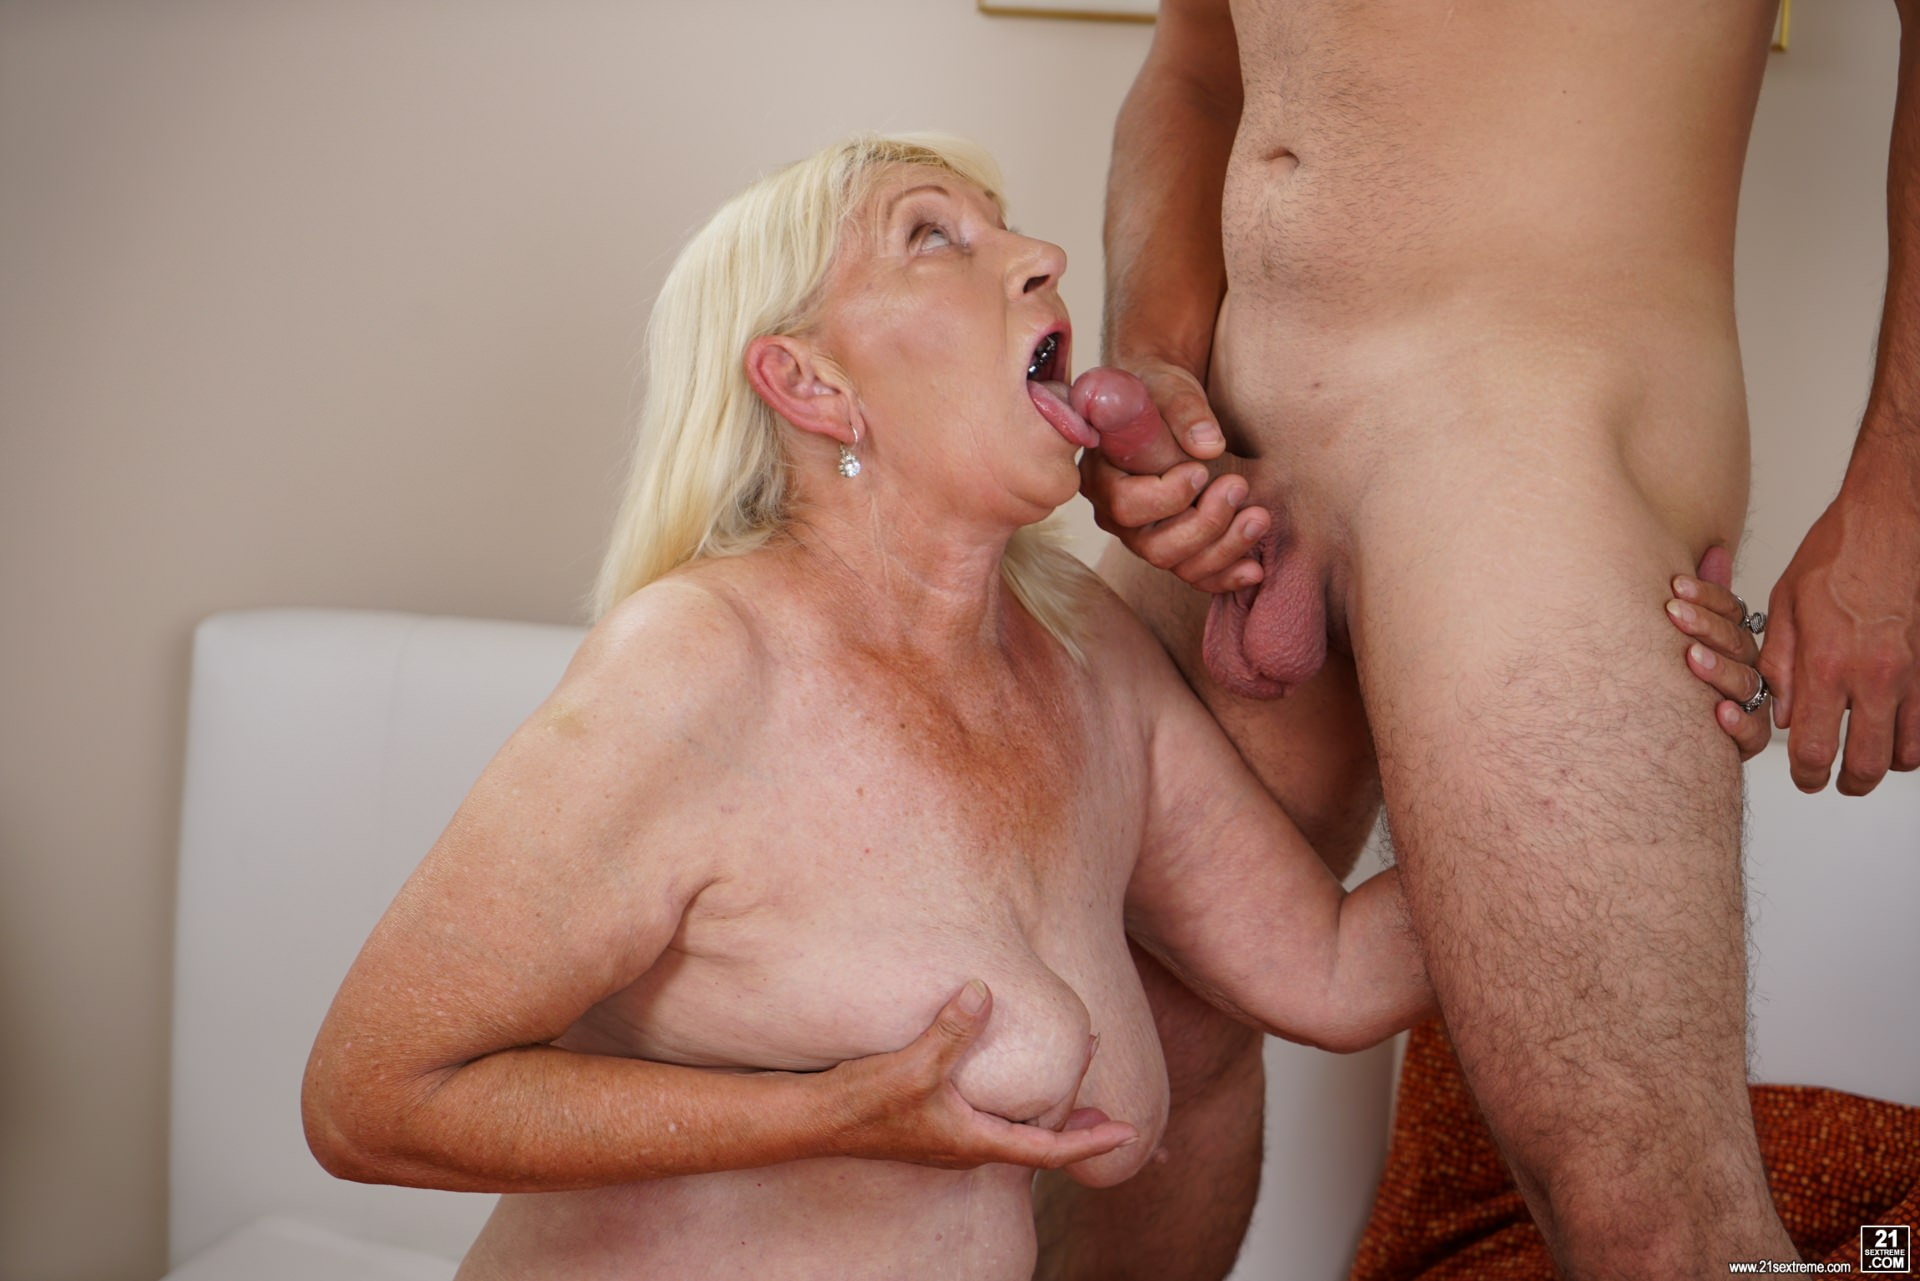 21Sextury 'Naughty Granny's Cravings ' starring Irene (photo 117)